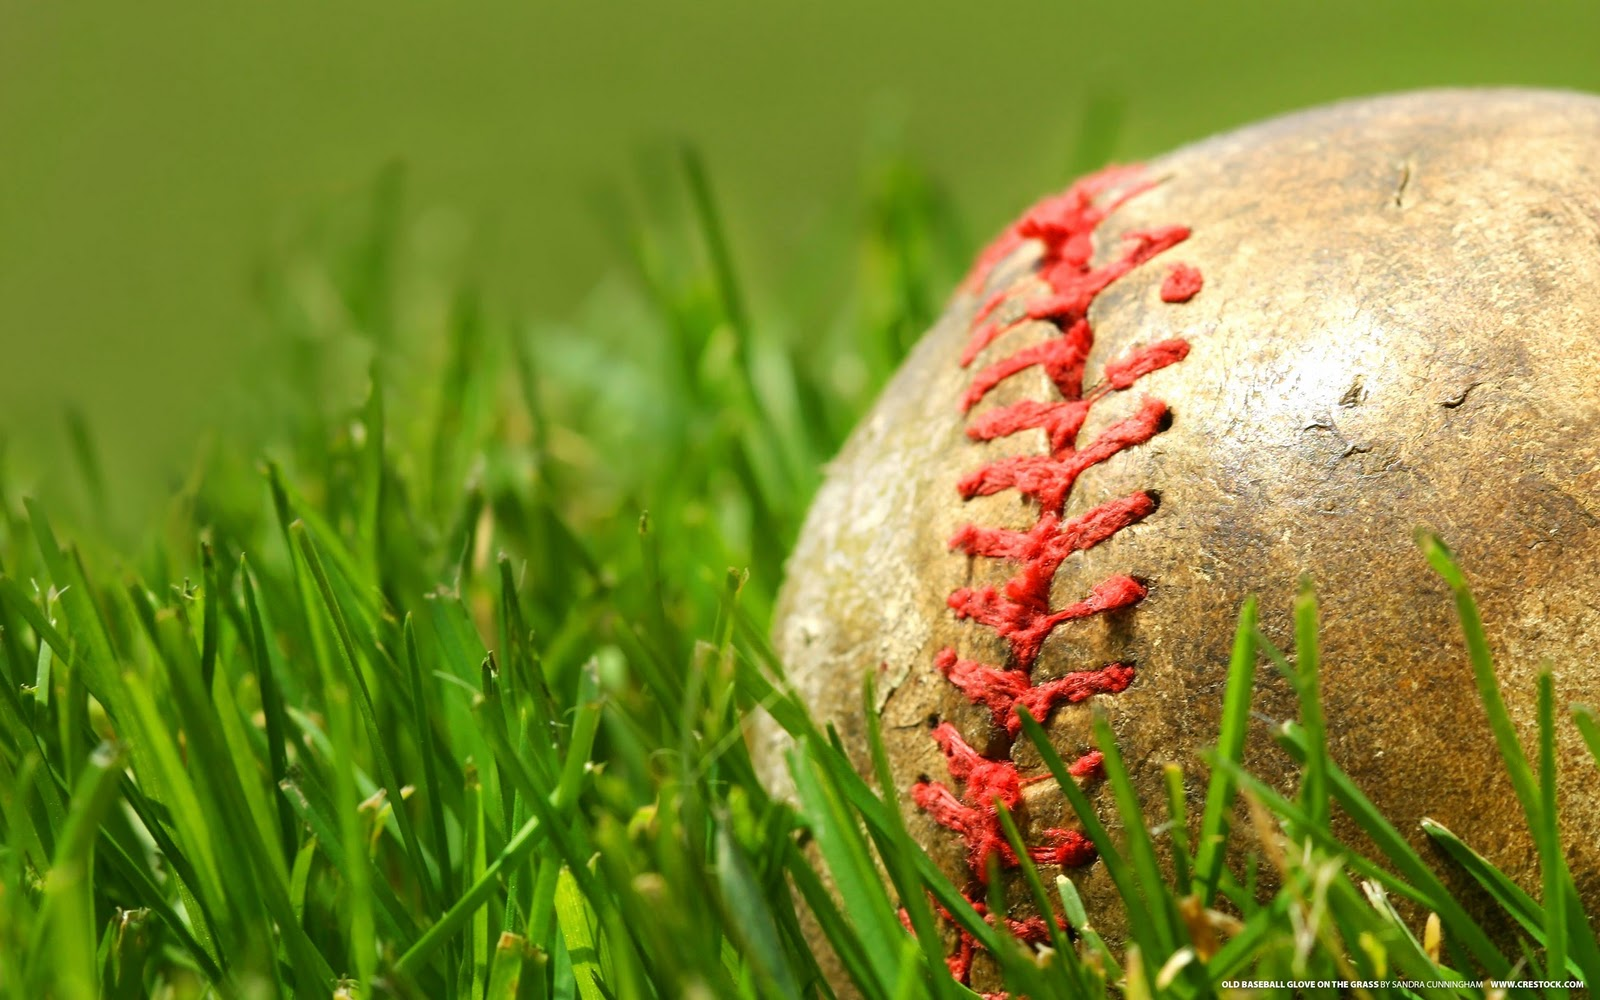 The-best-top-desktop-baseball-wallpapers-16-ball-in-the-grass-wallpaper